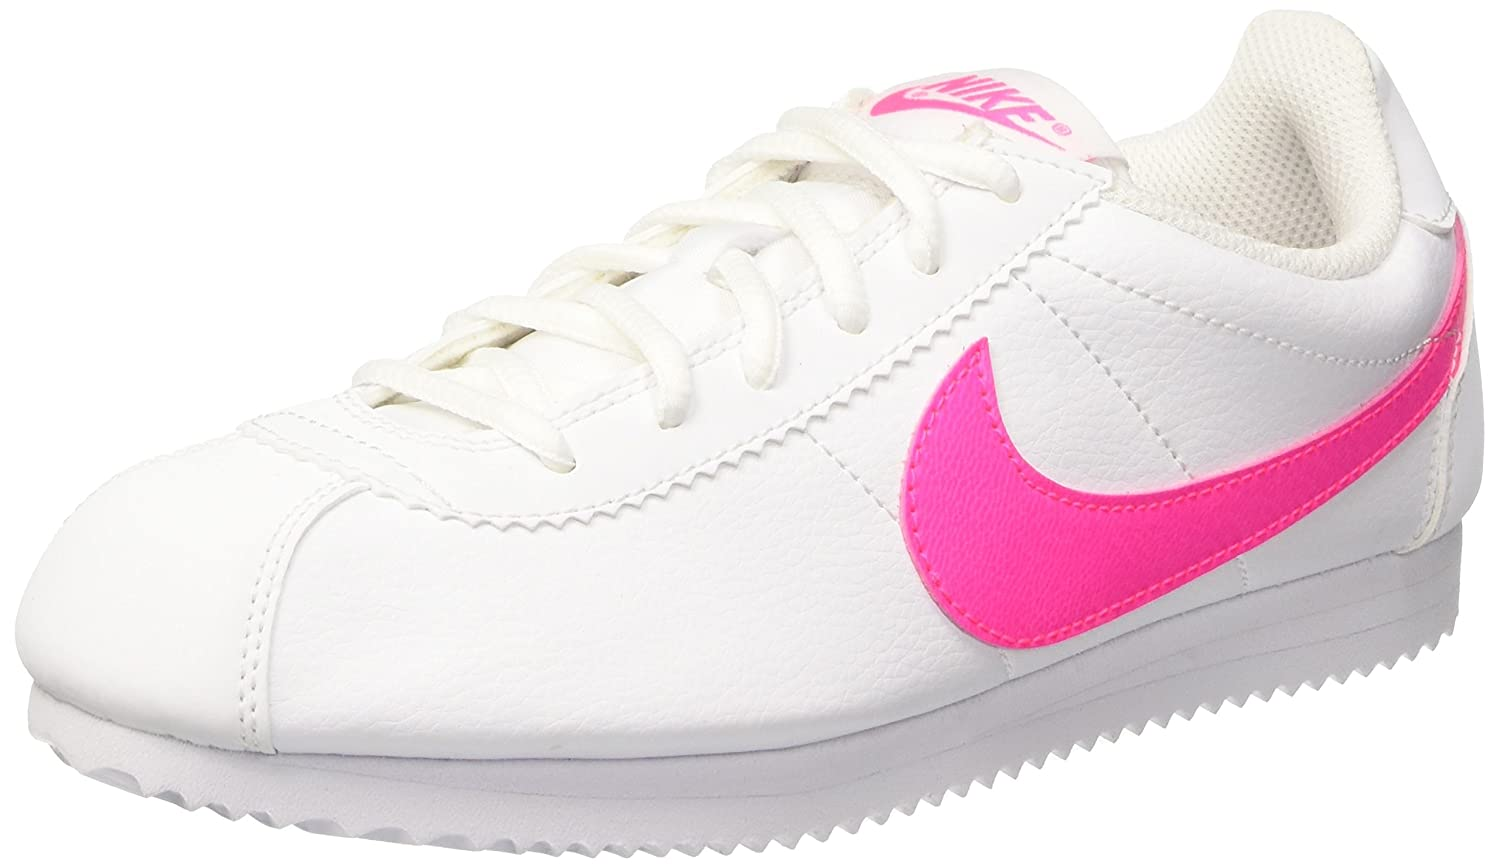 hot sales a0b77 6bf72 Nike Cortez GS Running Trainers 749502 Sneakers Shoes